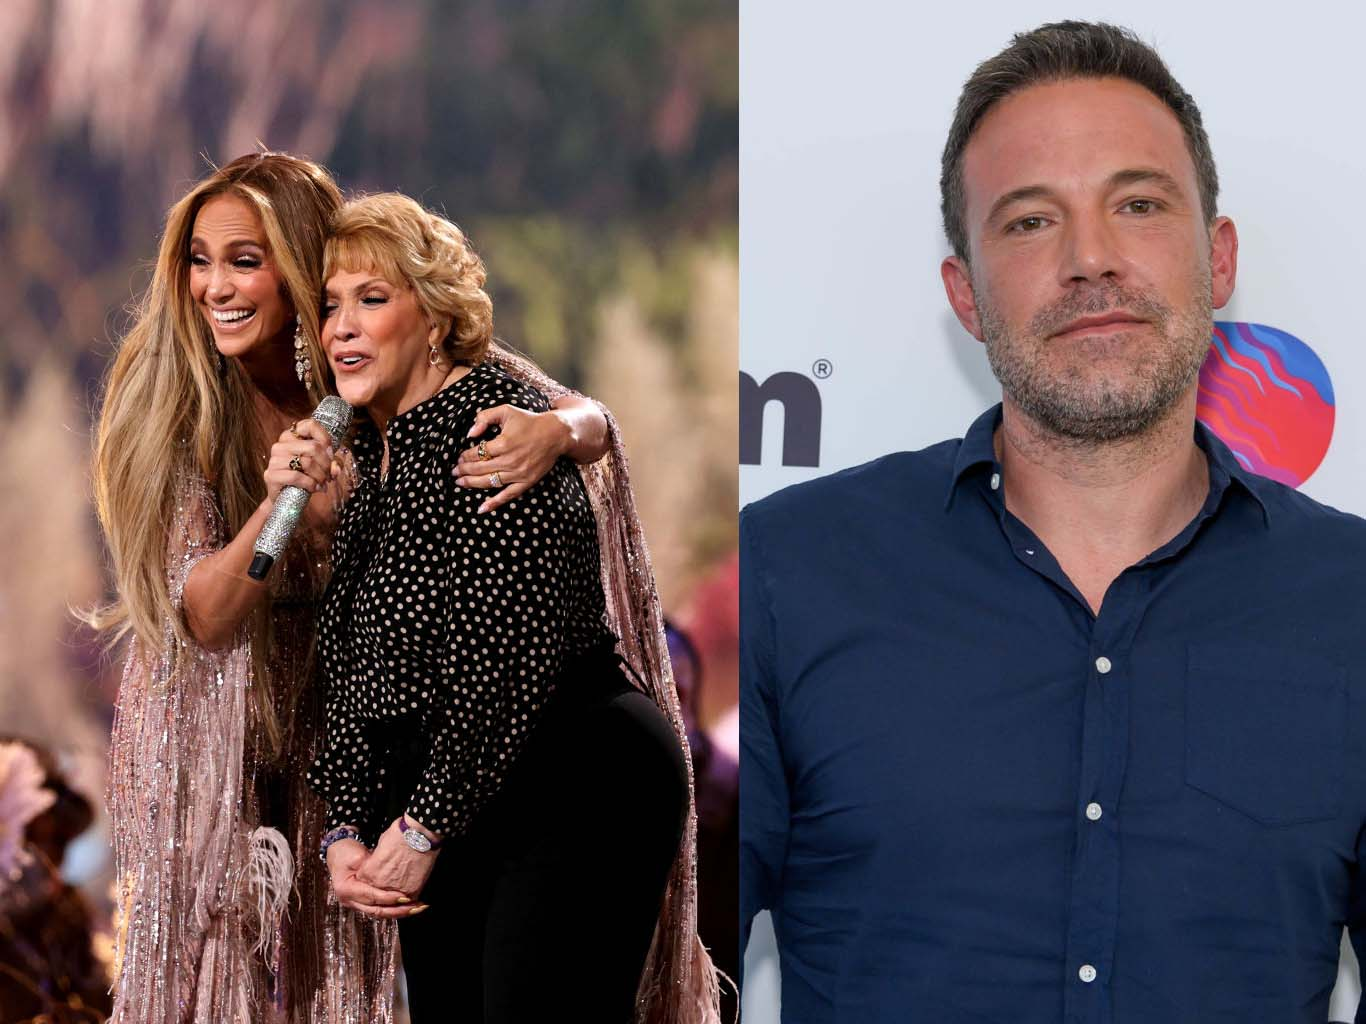 Ben Affleck Proves He's In Close Terms With Jennifer Lopez's Family After Reconciliation - Here's How